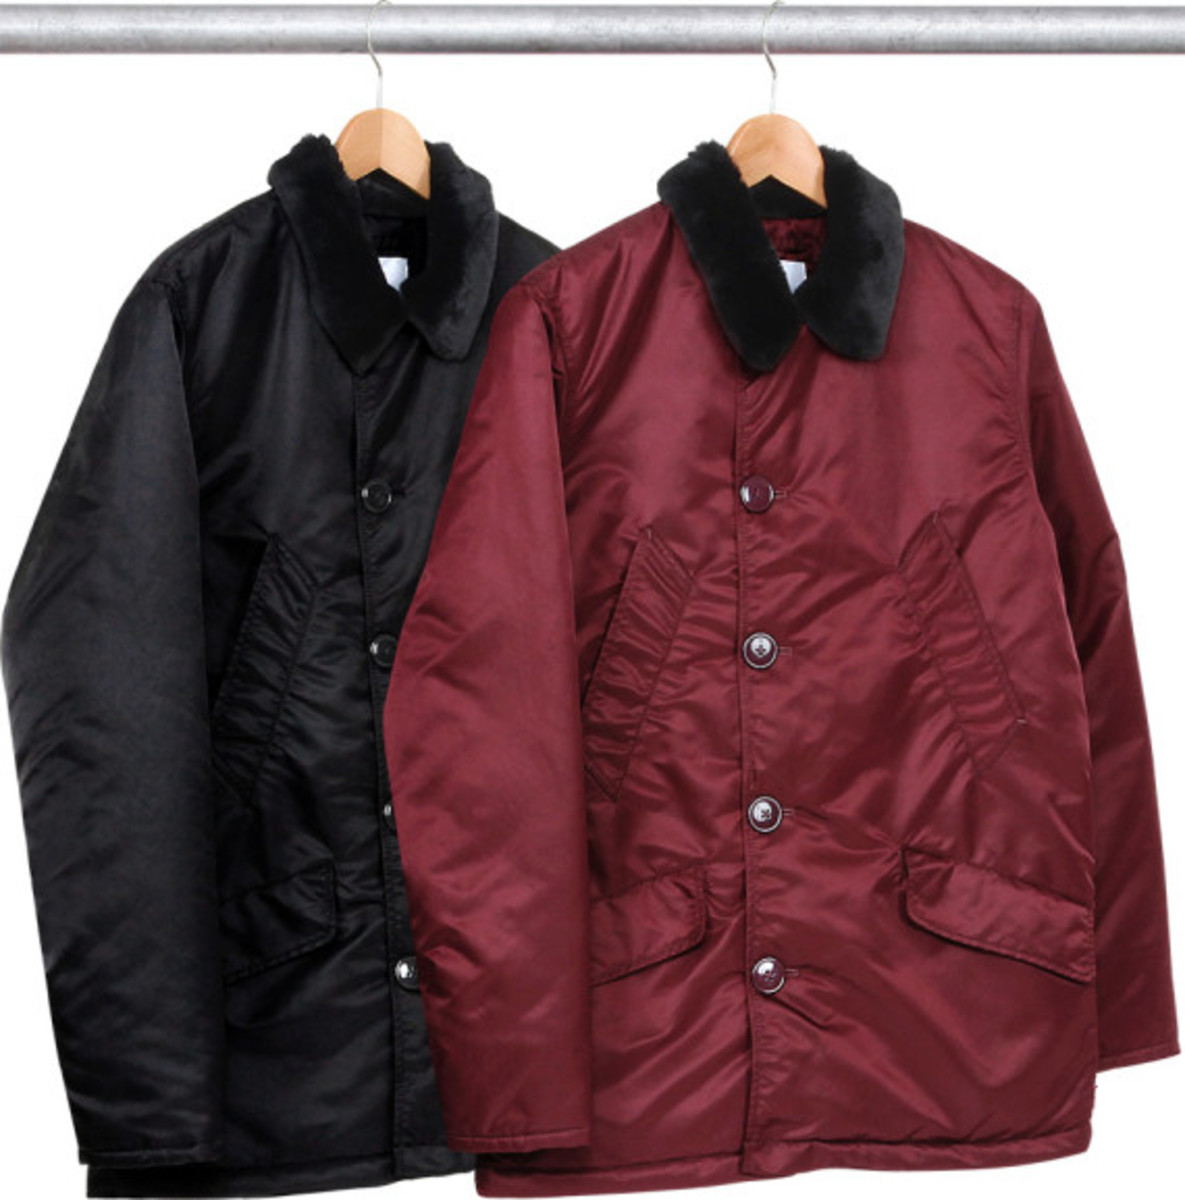 supreme-fall-winter-2013-outerwear-collection-69